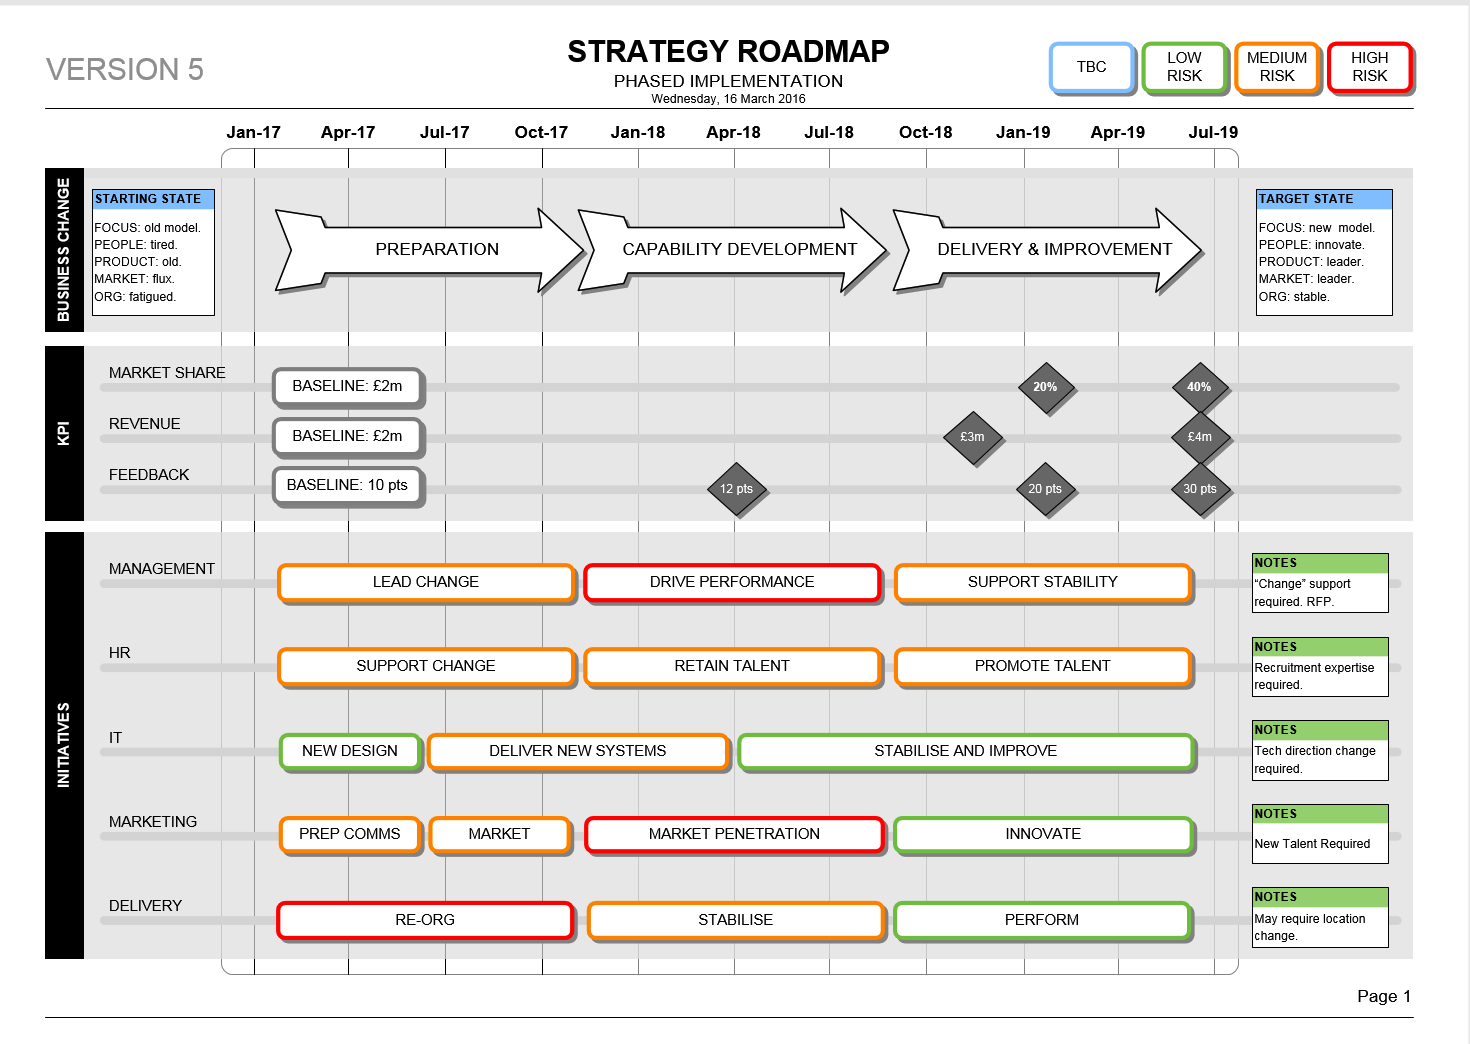 Strategy roadmap template visio pinterest timeline template the visio strategy roadmap template is the perfect strategic communication plan business change kpi initiatives timeline wajeb Image collections